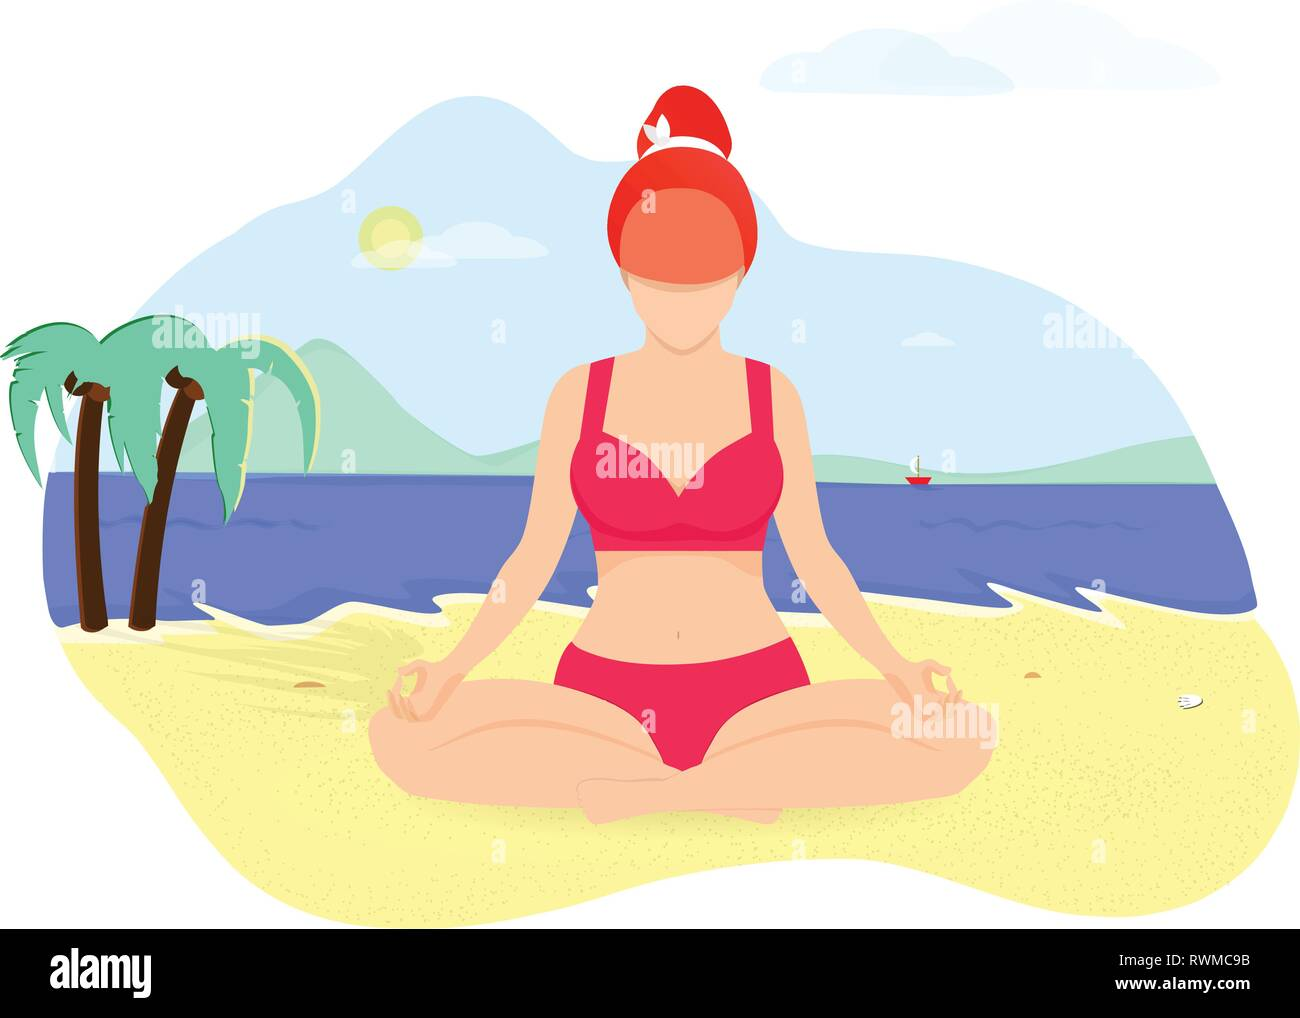 Curvy Flexible Sporty Ginger Woman Doing Yoga Asana on Seaside Beach Isolated on White Background. Girl in Red Bikini Sitting in Lotus Position on Sea - Stock Vector